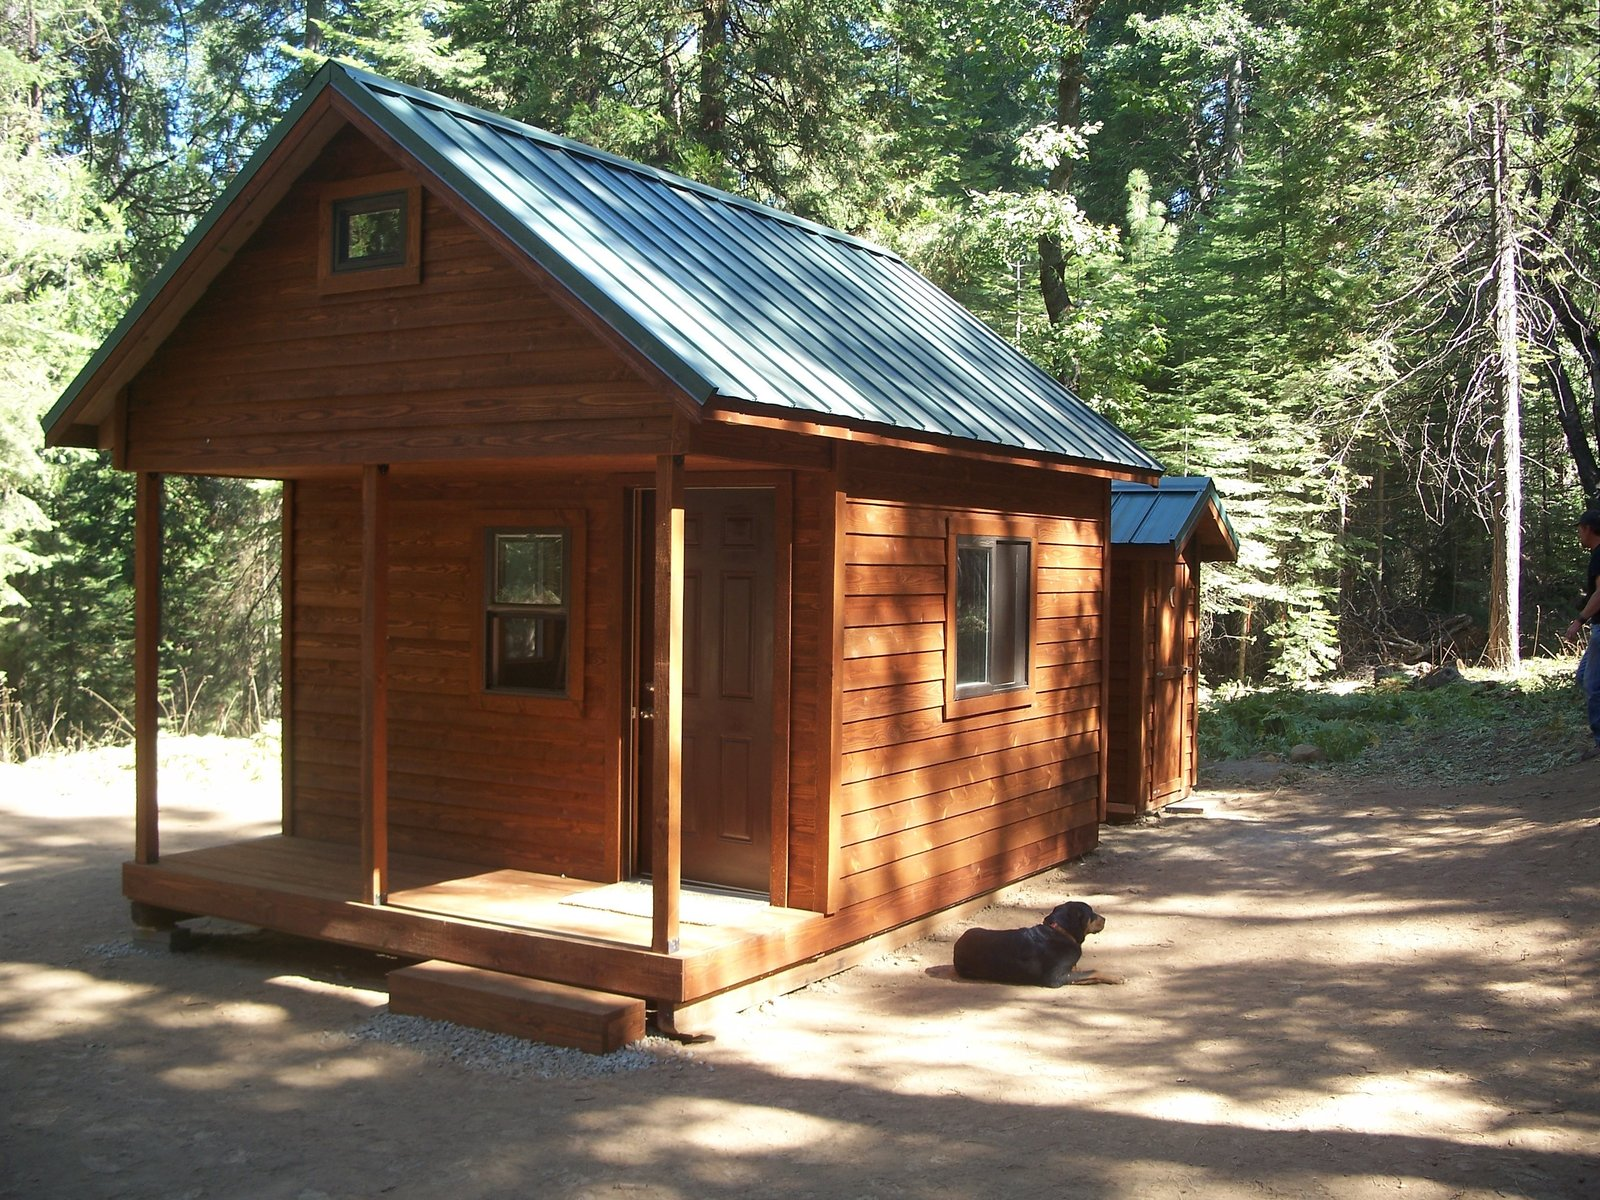 These cabin kits are ideal for easy assembly and transport to remote locations or your backyard. No section is larger than four feet wide or 12 feet long. Everything is either pre-assembled in sections or pre-cut for hassle free construction, with staining and painting options also available.  Photo 4 of 11 in 10 Prefab Log Home Companies